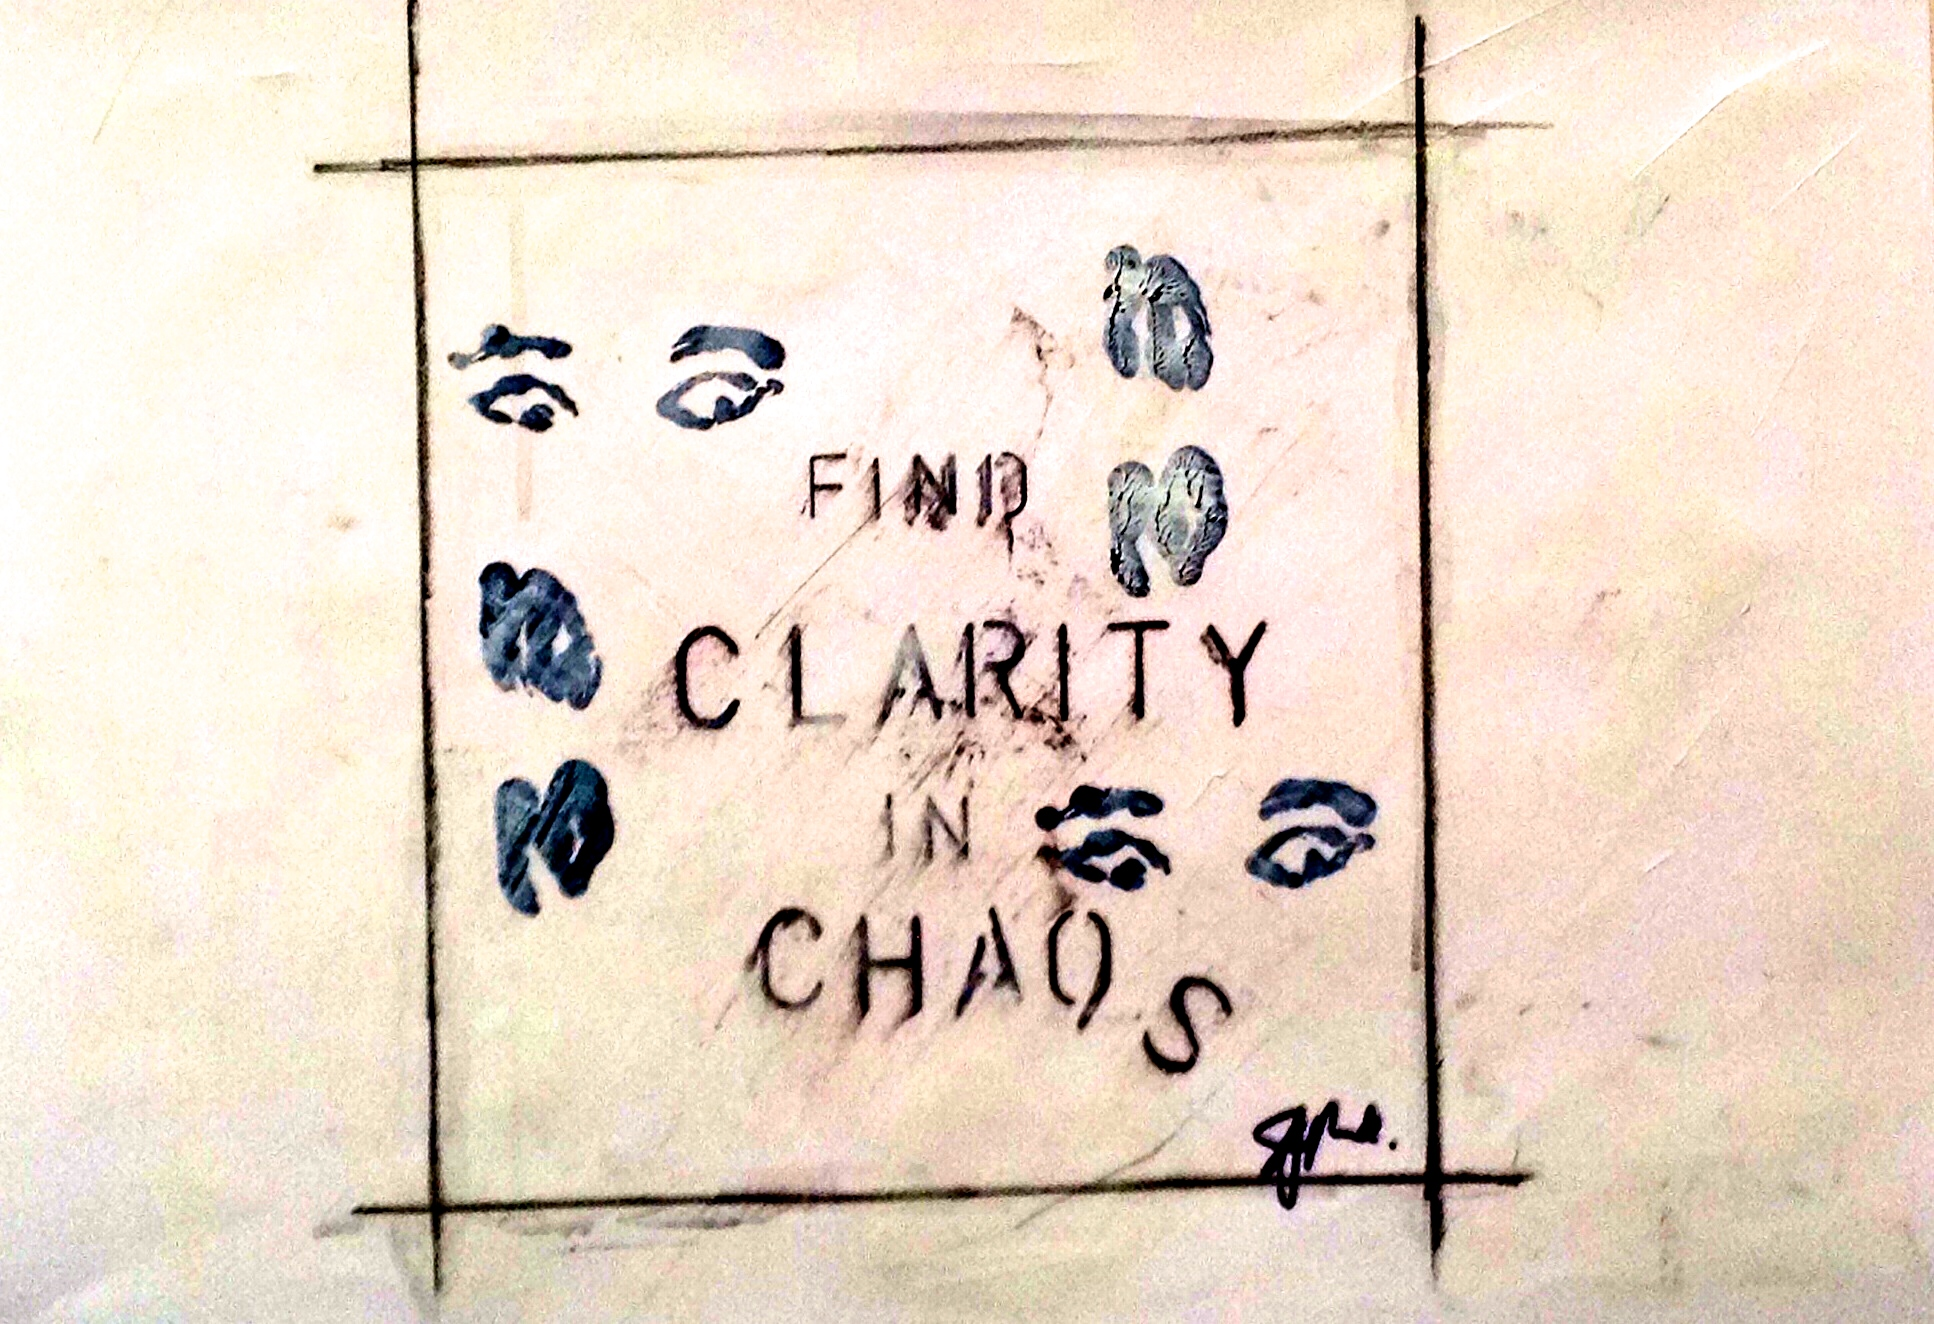 clarity in chaos